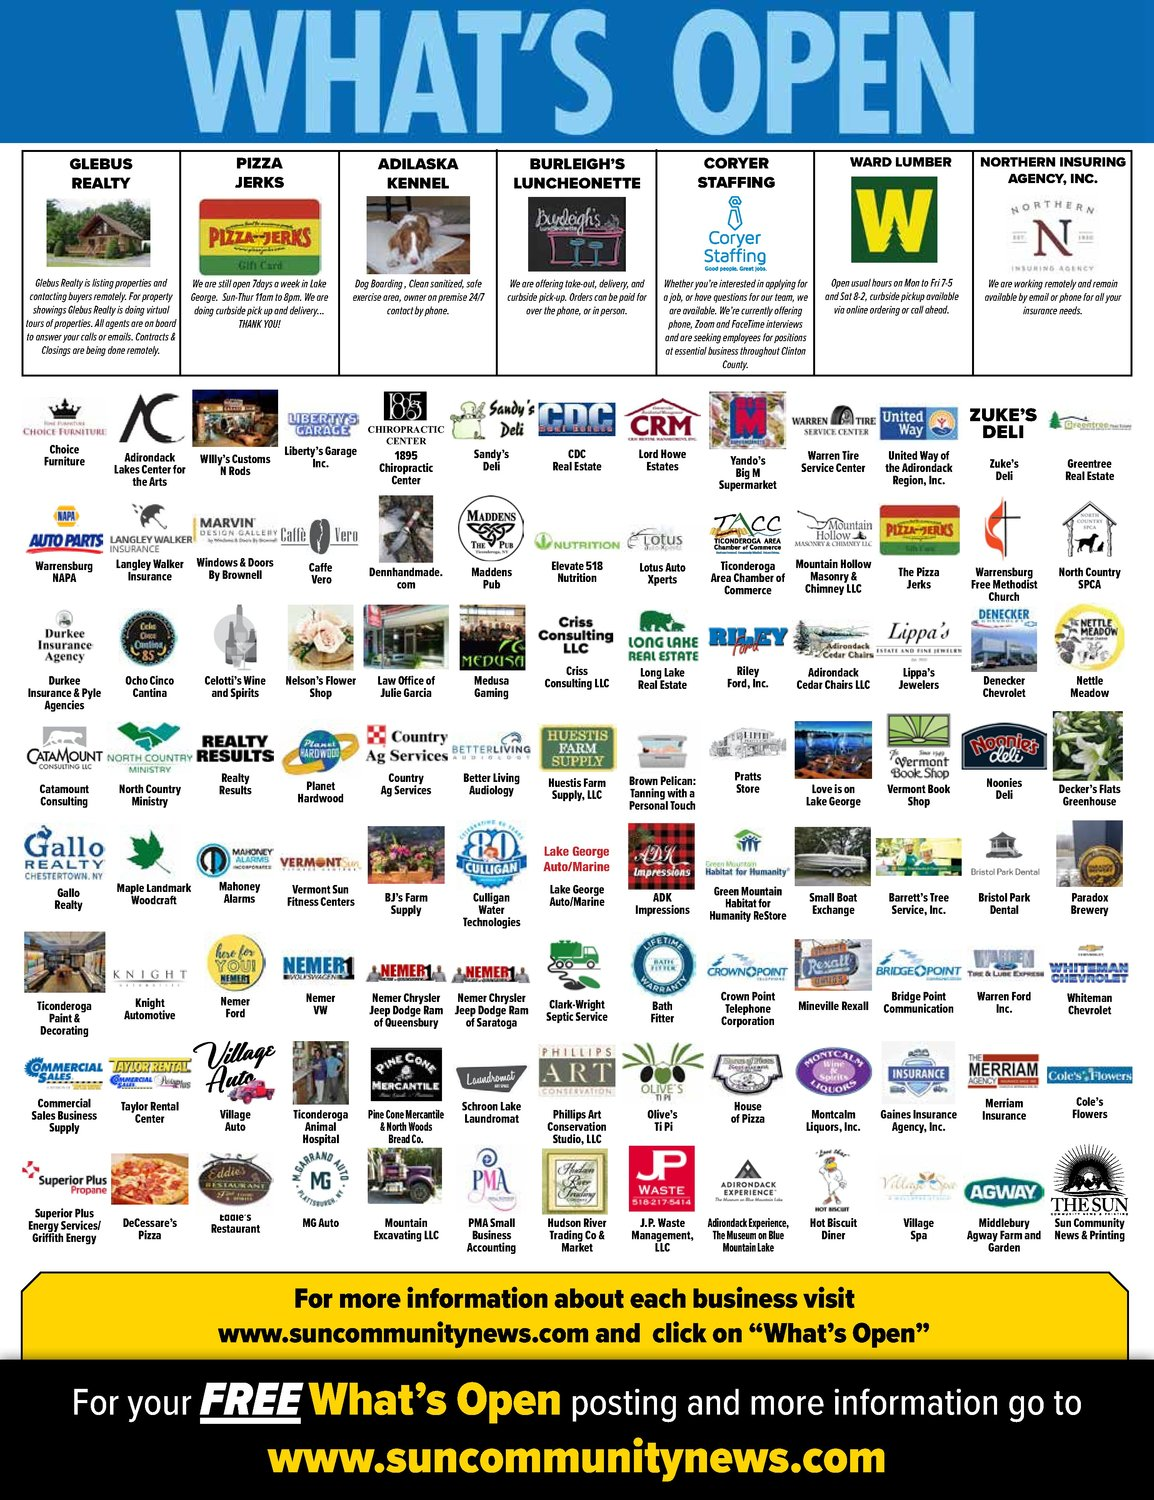 Sun Community Newspapers in Elizabethtown, N.Y., ran the logo of every company that posted to What's Open to promote the app to both readers and businesses.